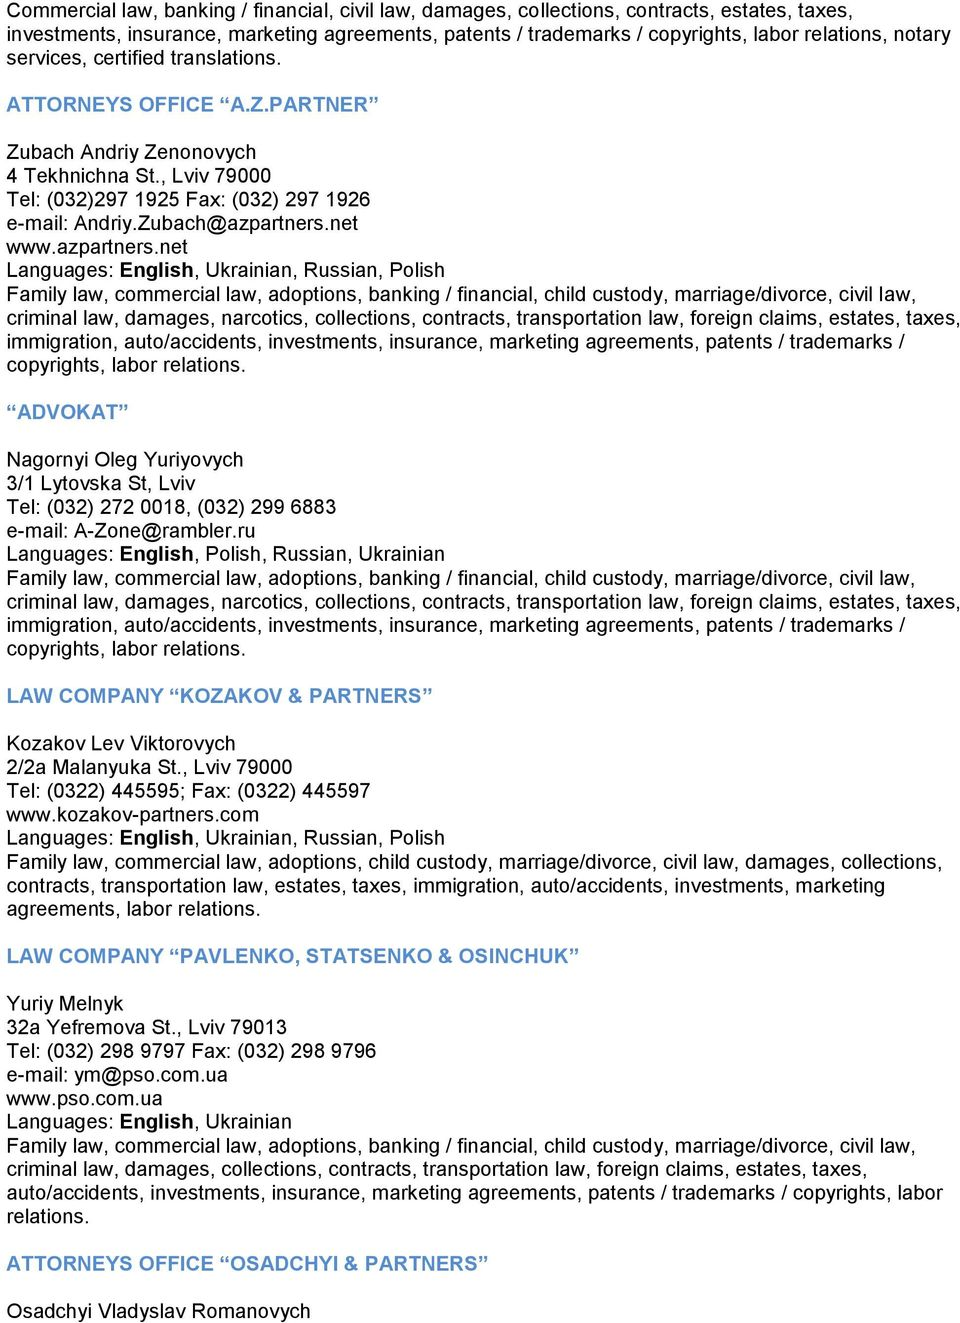 Services of lawyers in Ivano-Frankivsk region: a selection of sites